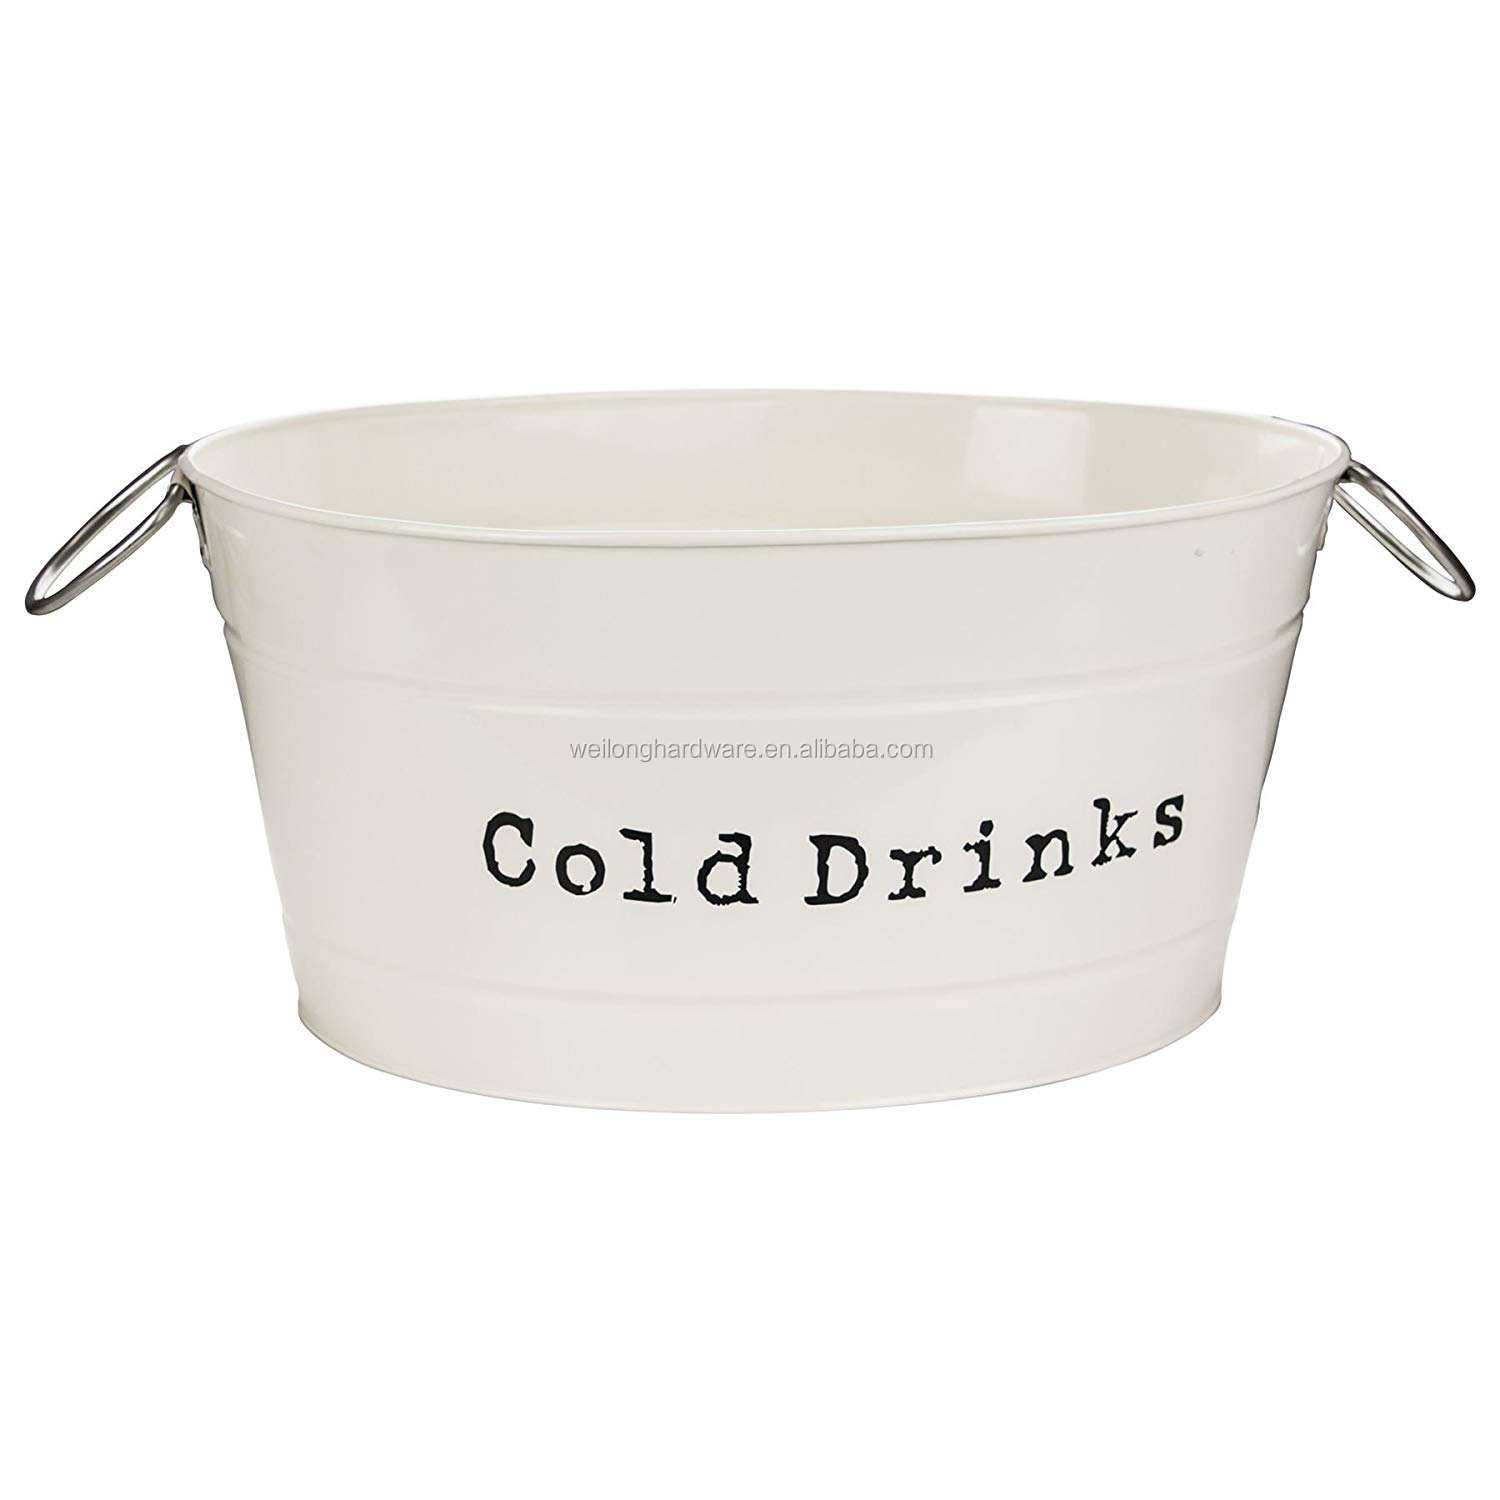 Metal Ice Bucket Party Tub Ice Holder Housewares Drinks Cooler Party in Vintage